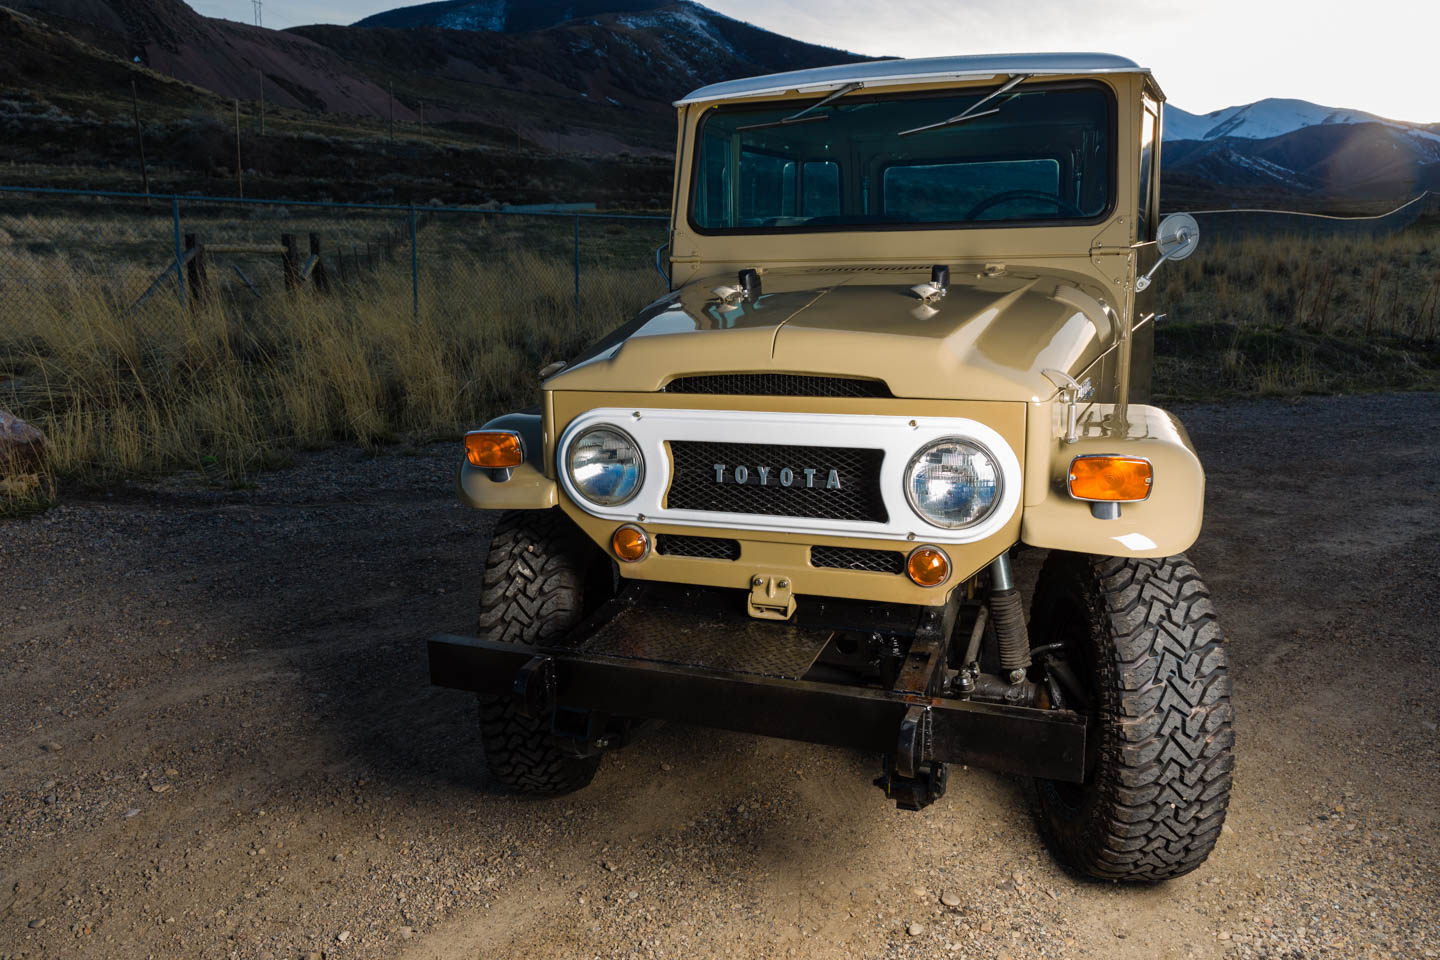 One light for the Toyota Land Cruiser